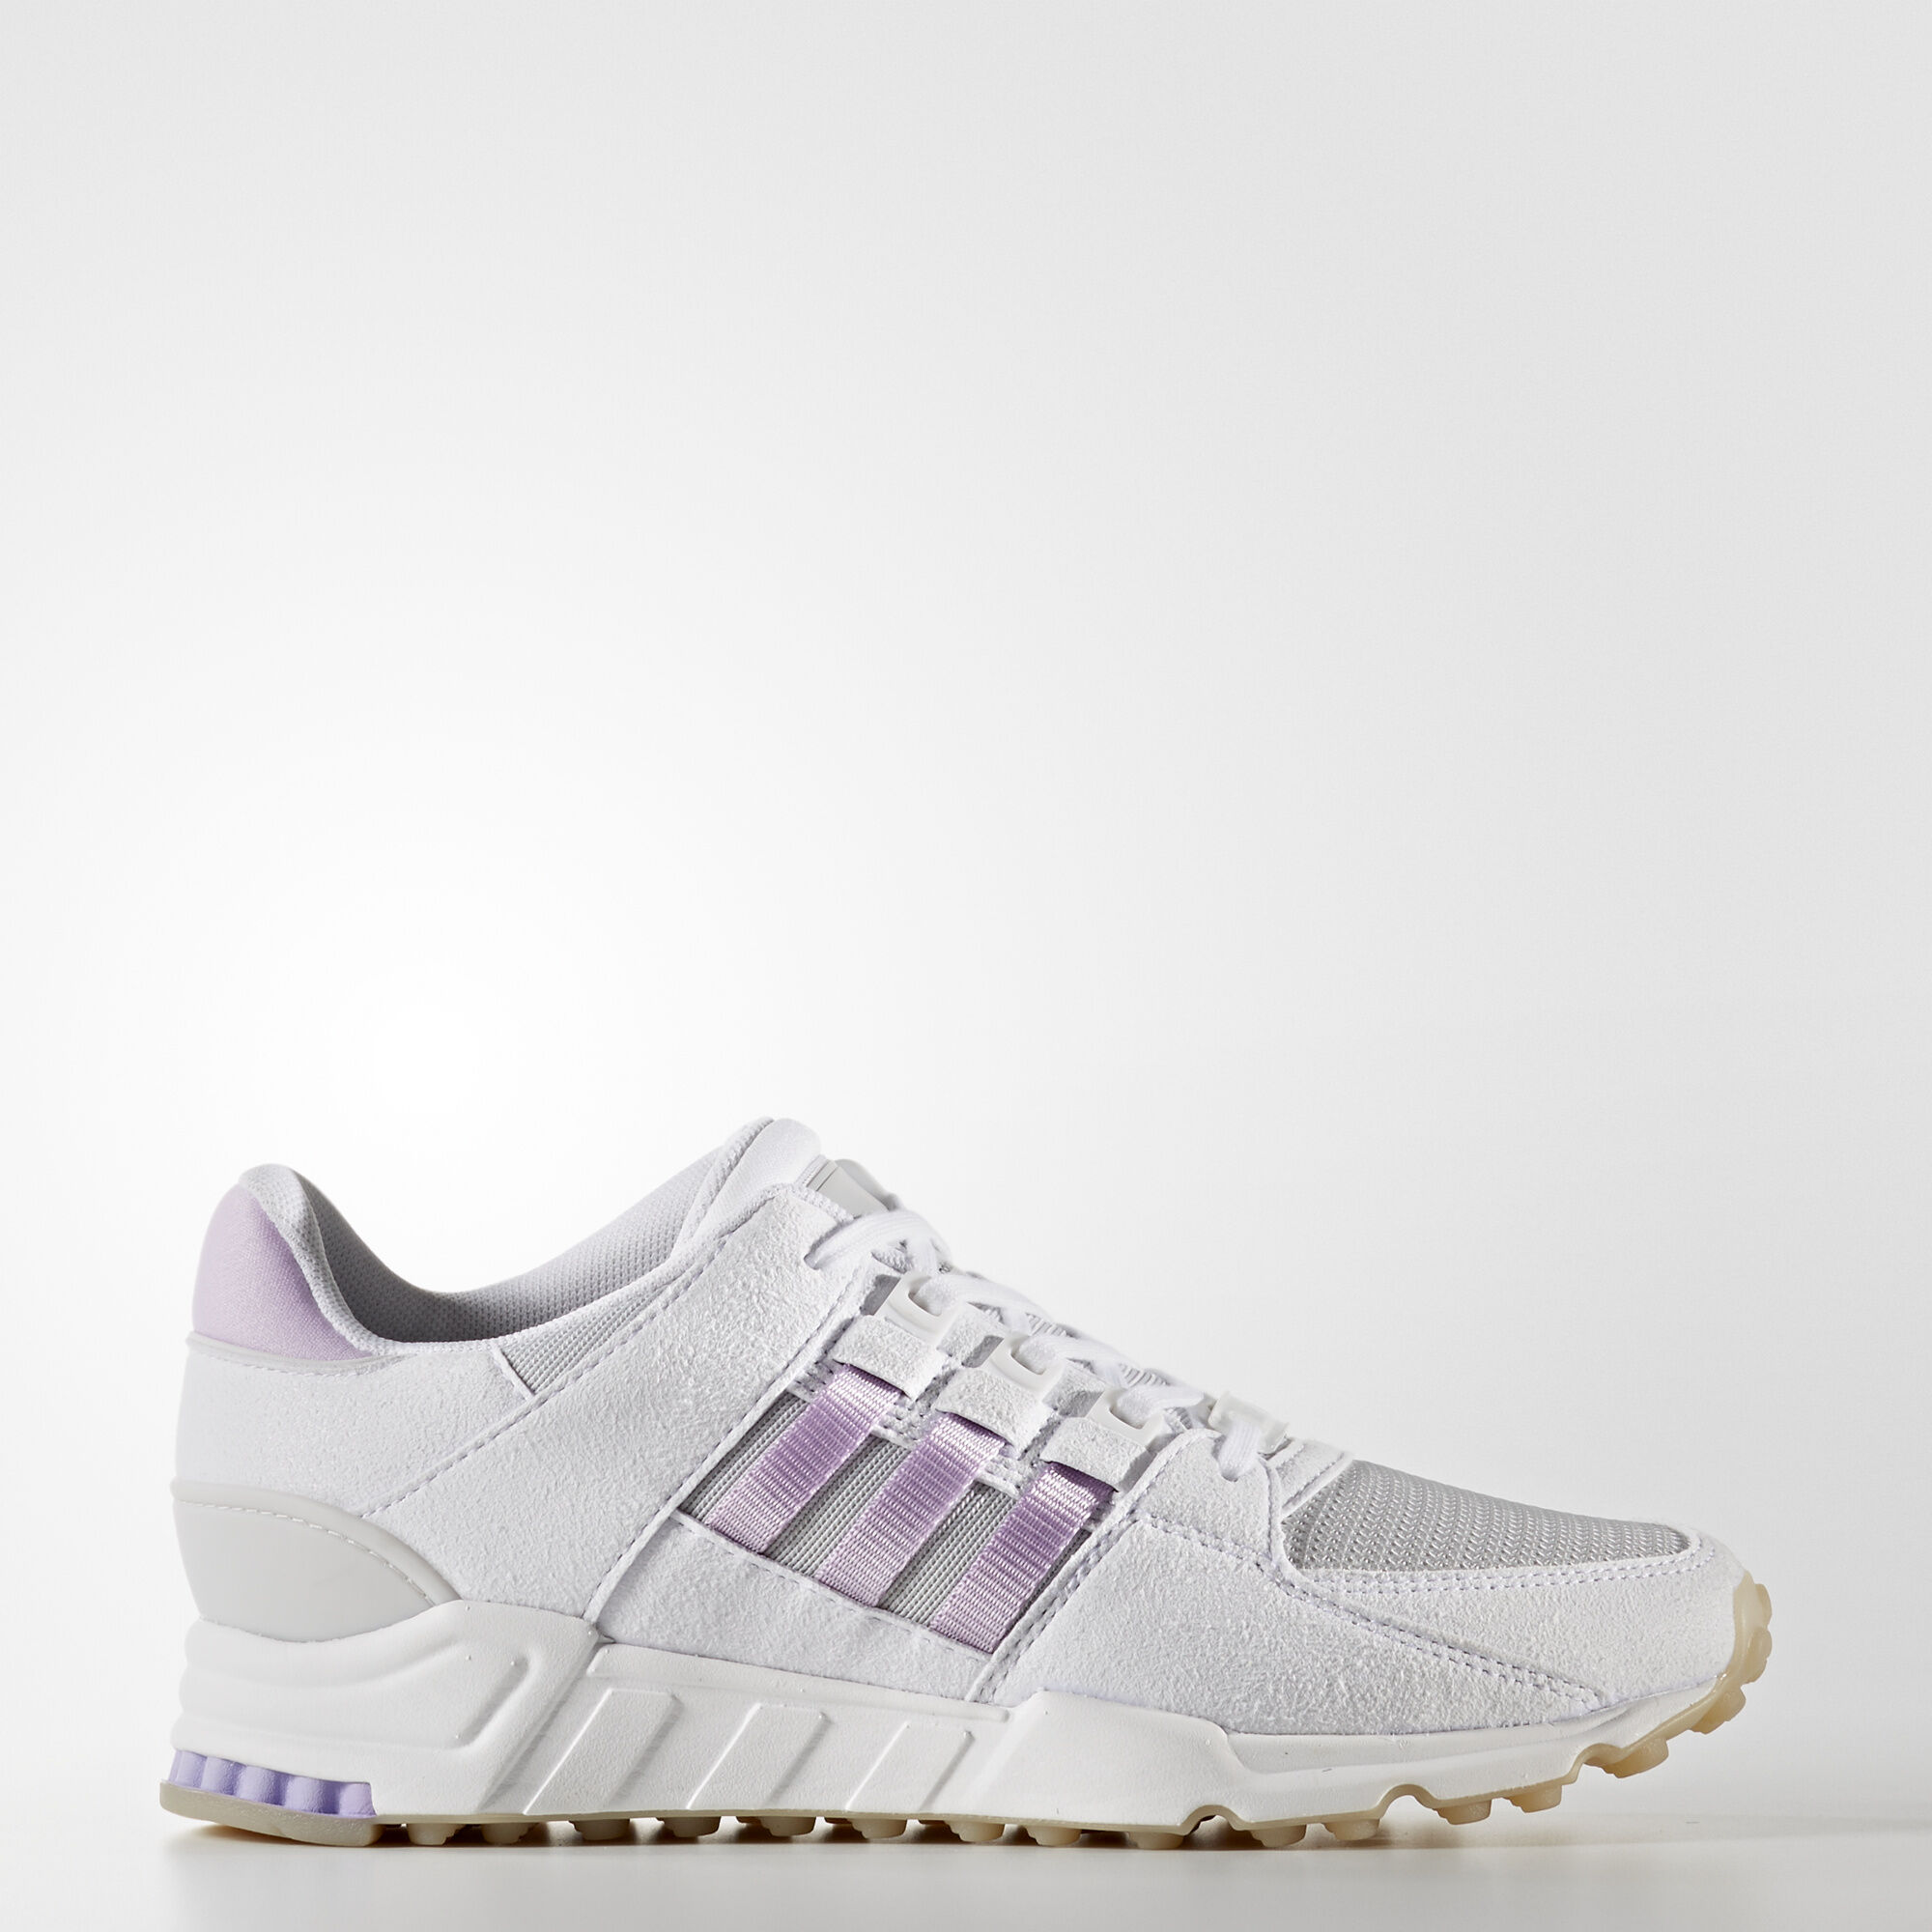 Where to Buy adidas EQT Boost